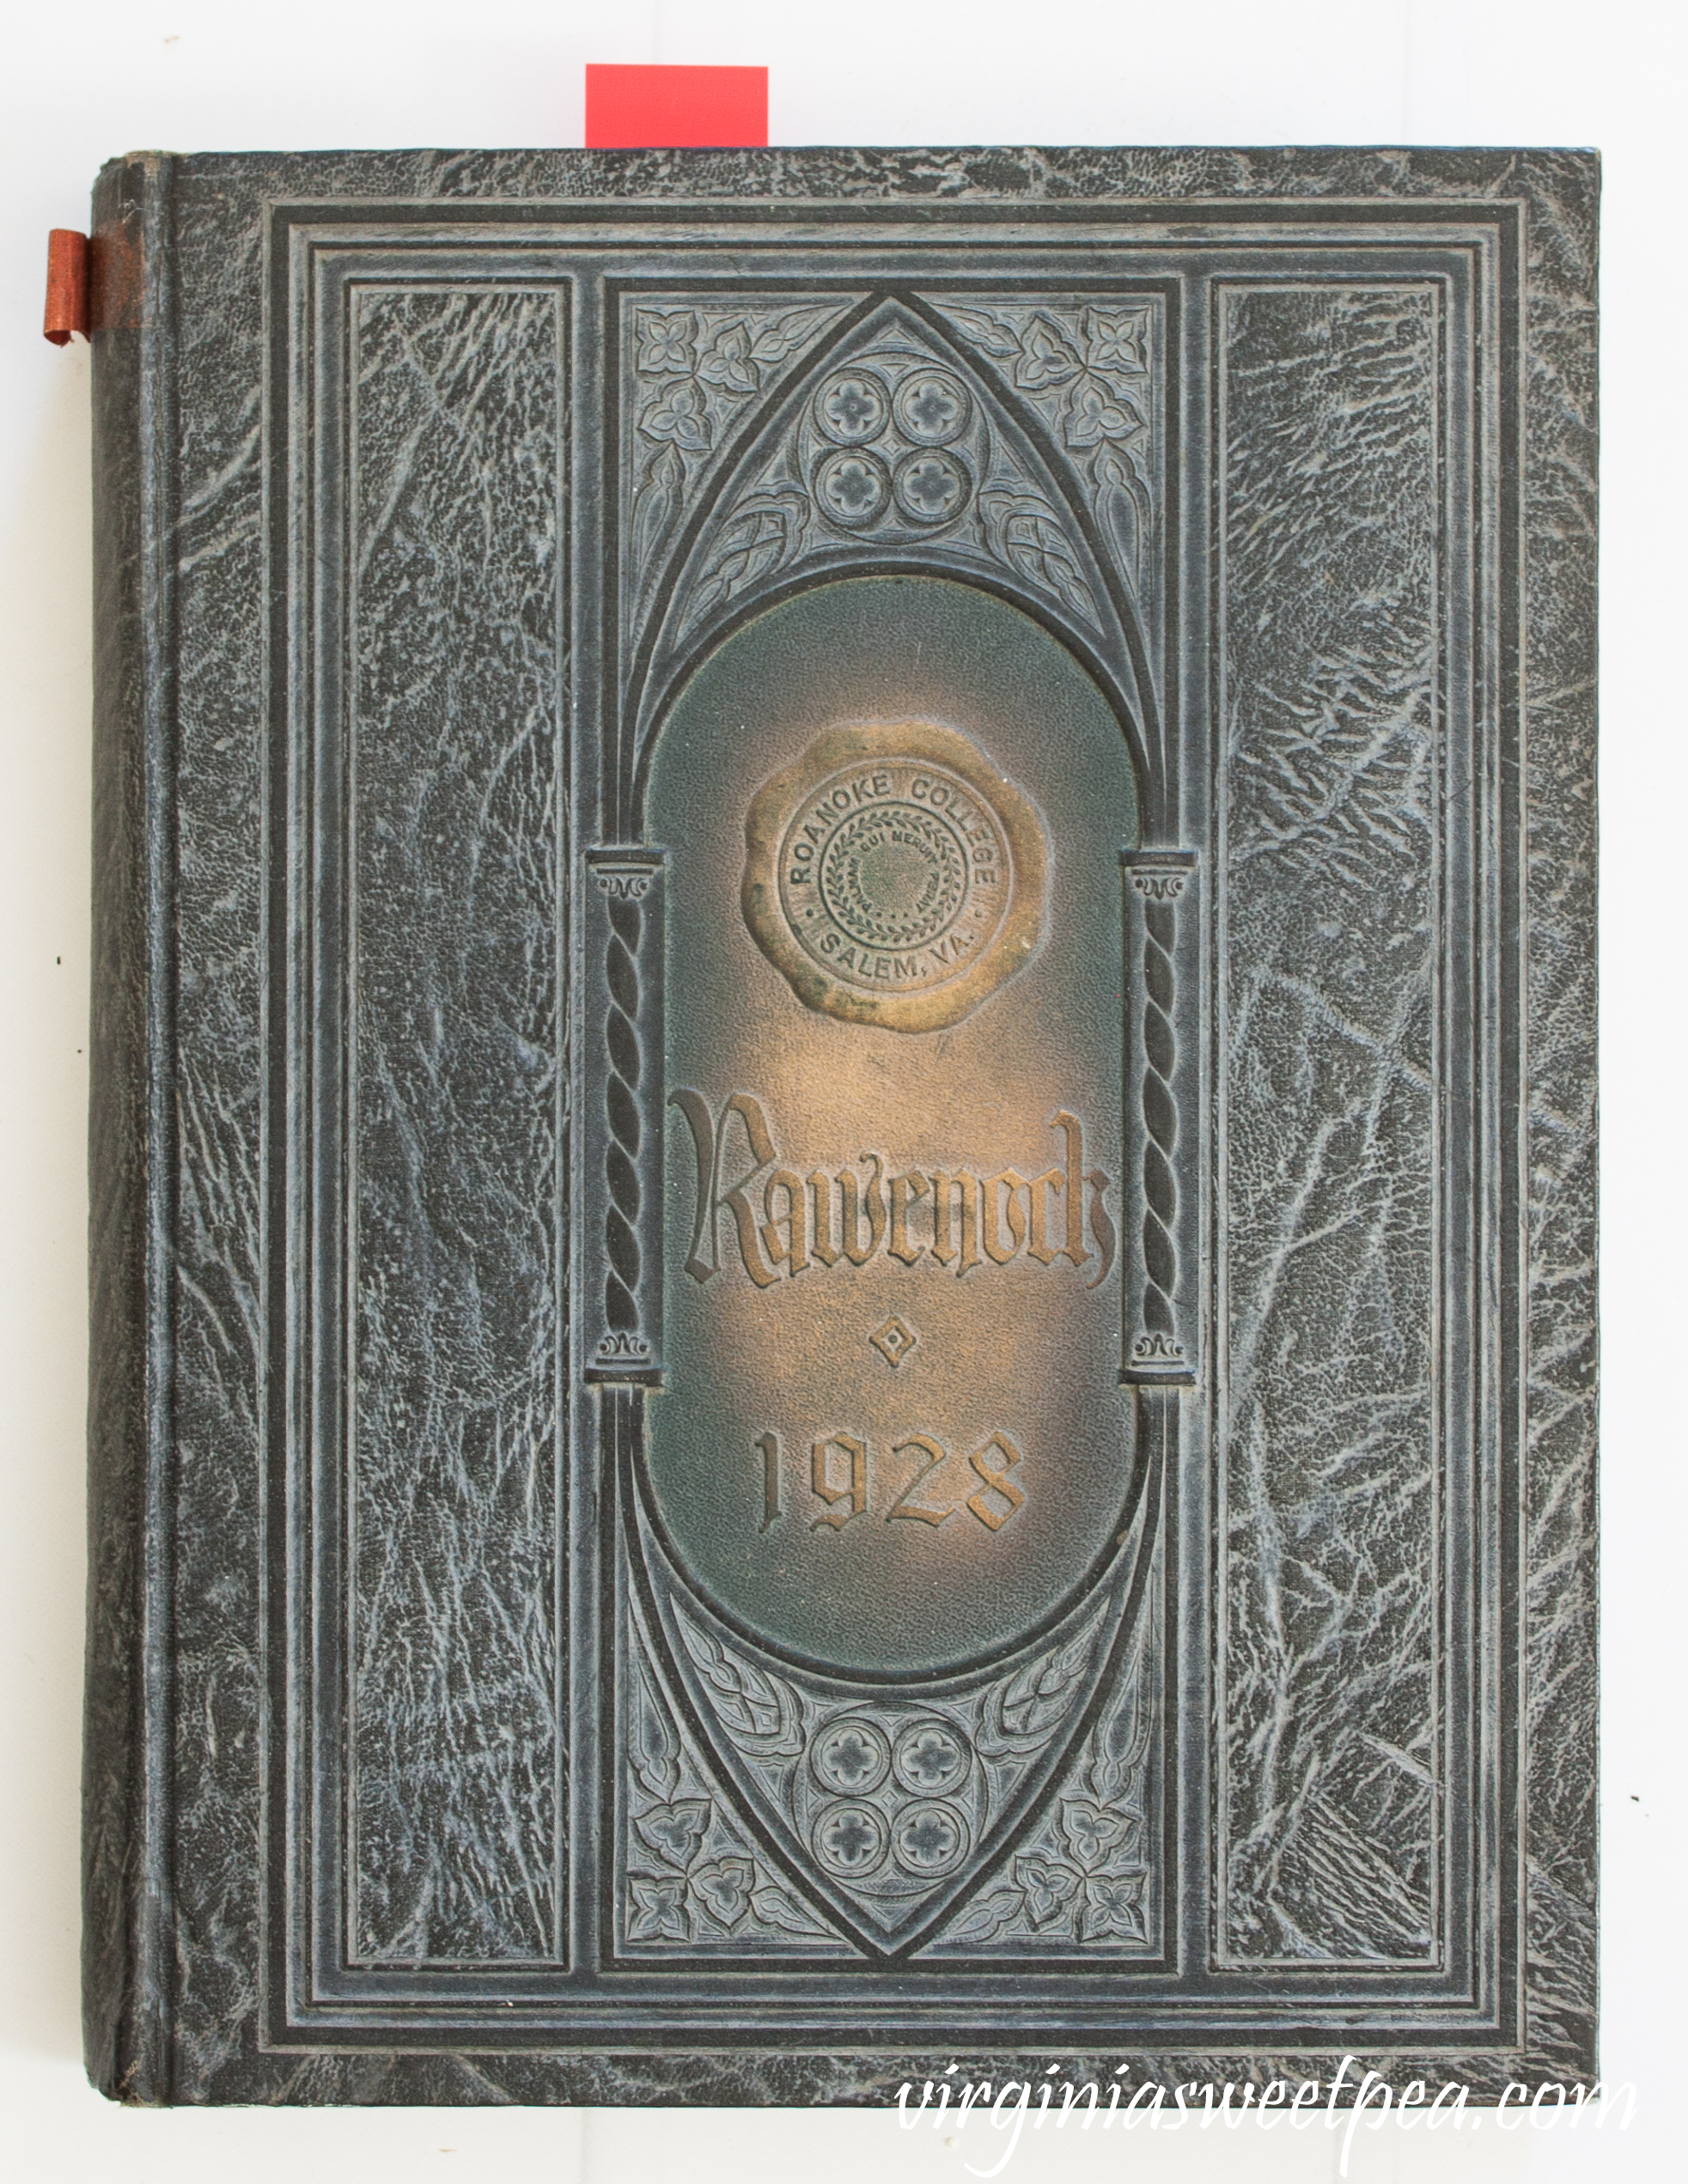 1928 Roanoke College Yearbook